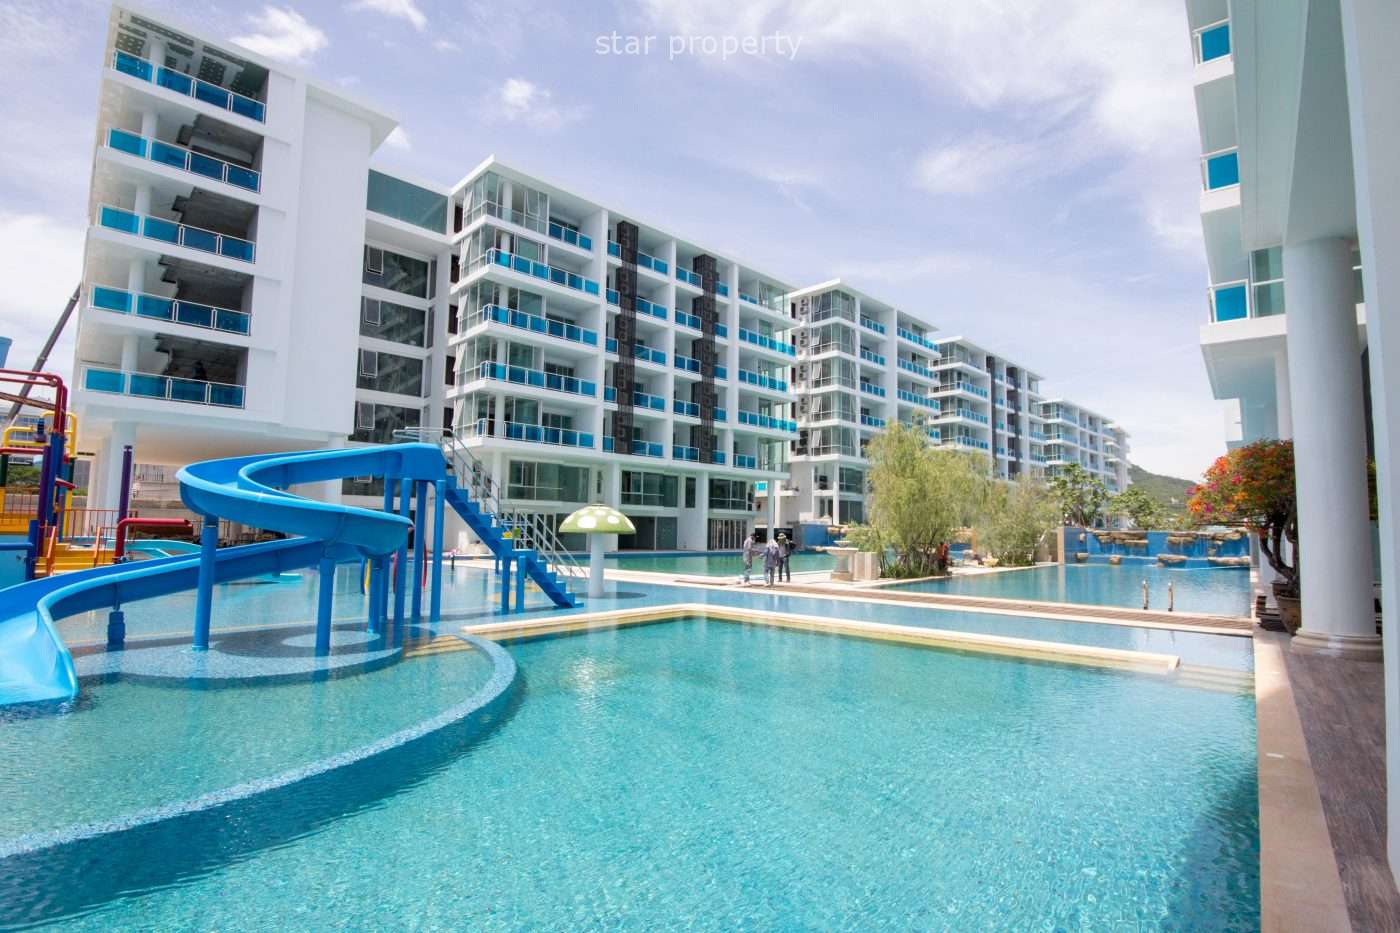 Pool Access Unit at My Resort Condo for Sale at My resort condo